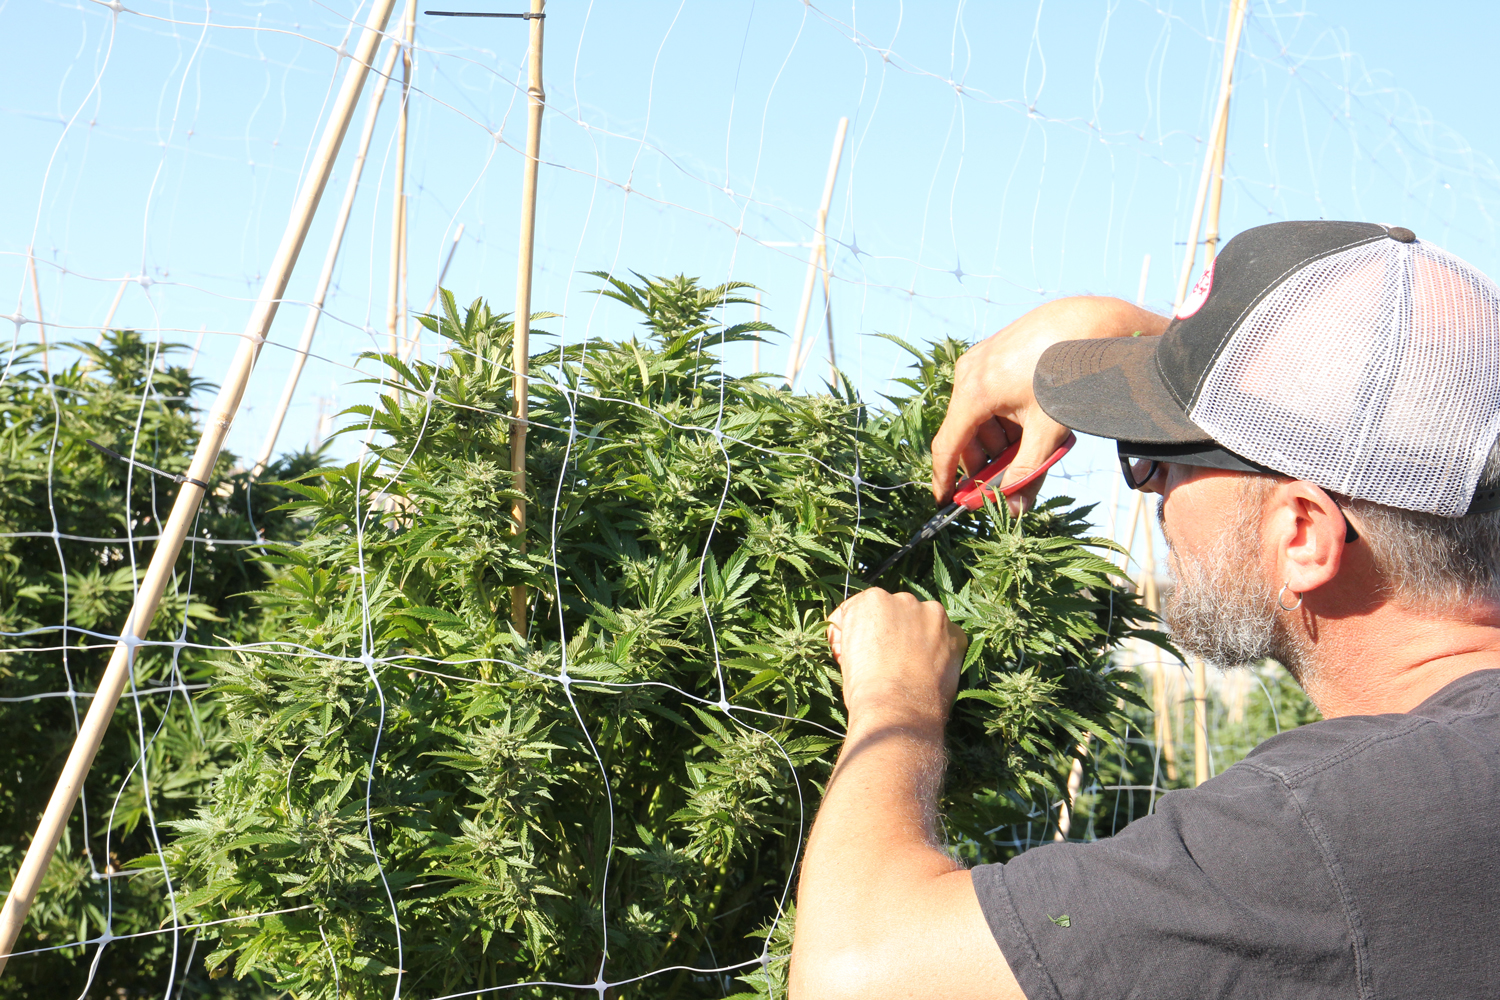 Clipping cannabis buds from the plants while in the field.